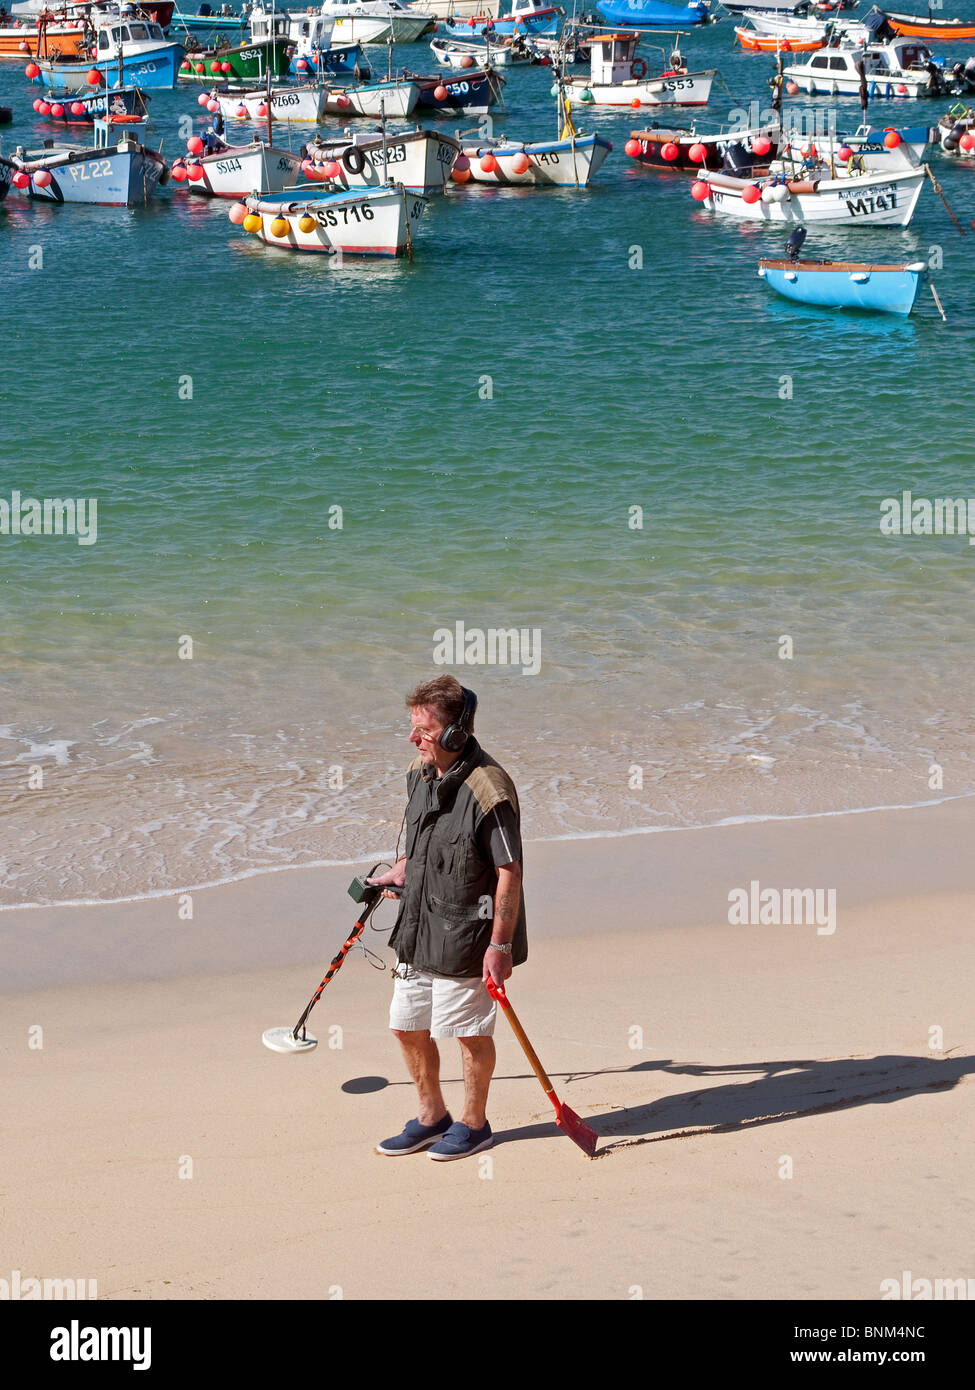 a man using a metal detector on the beach at st.ives in cornwall, uk - Stock Image